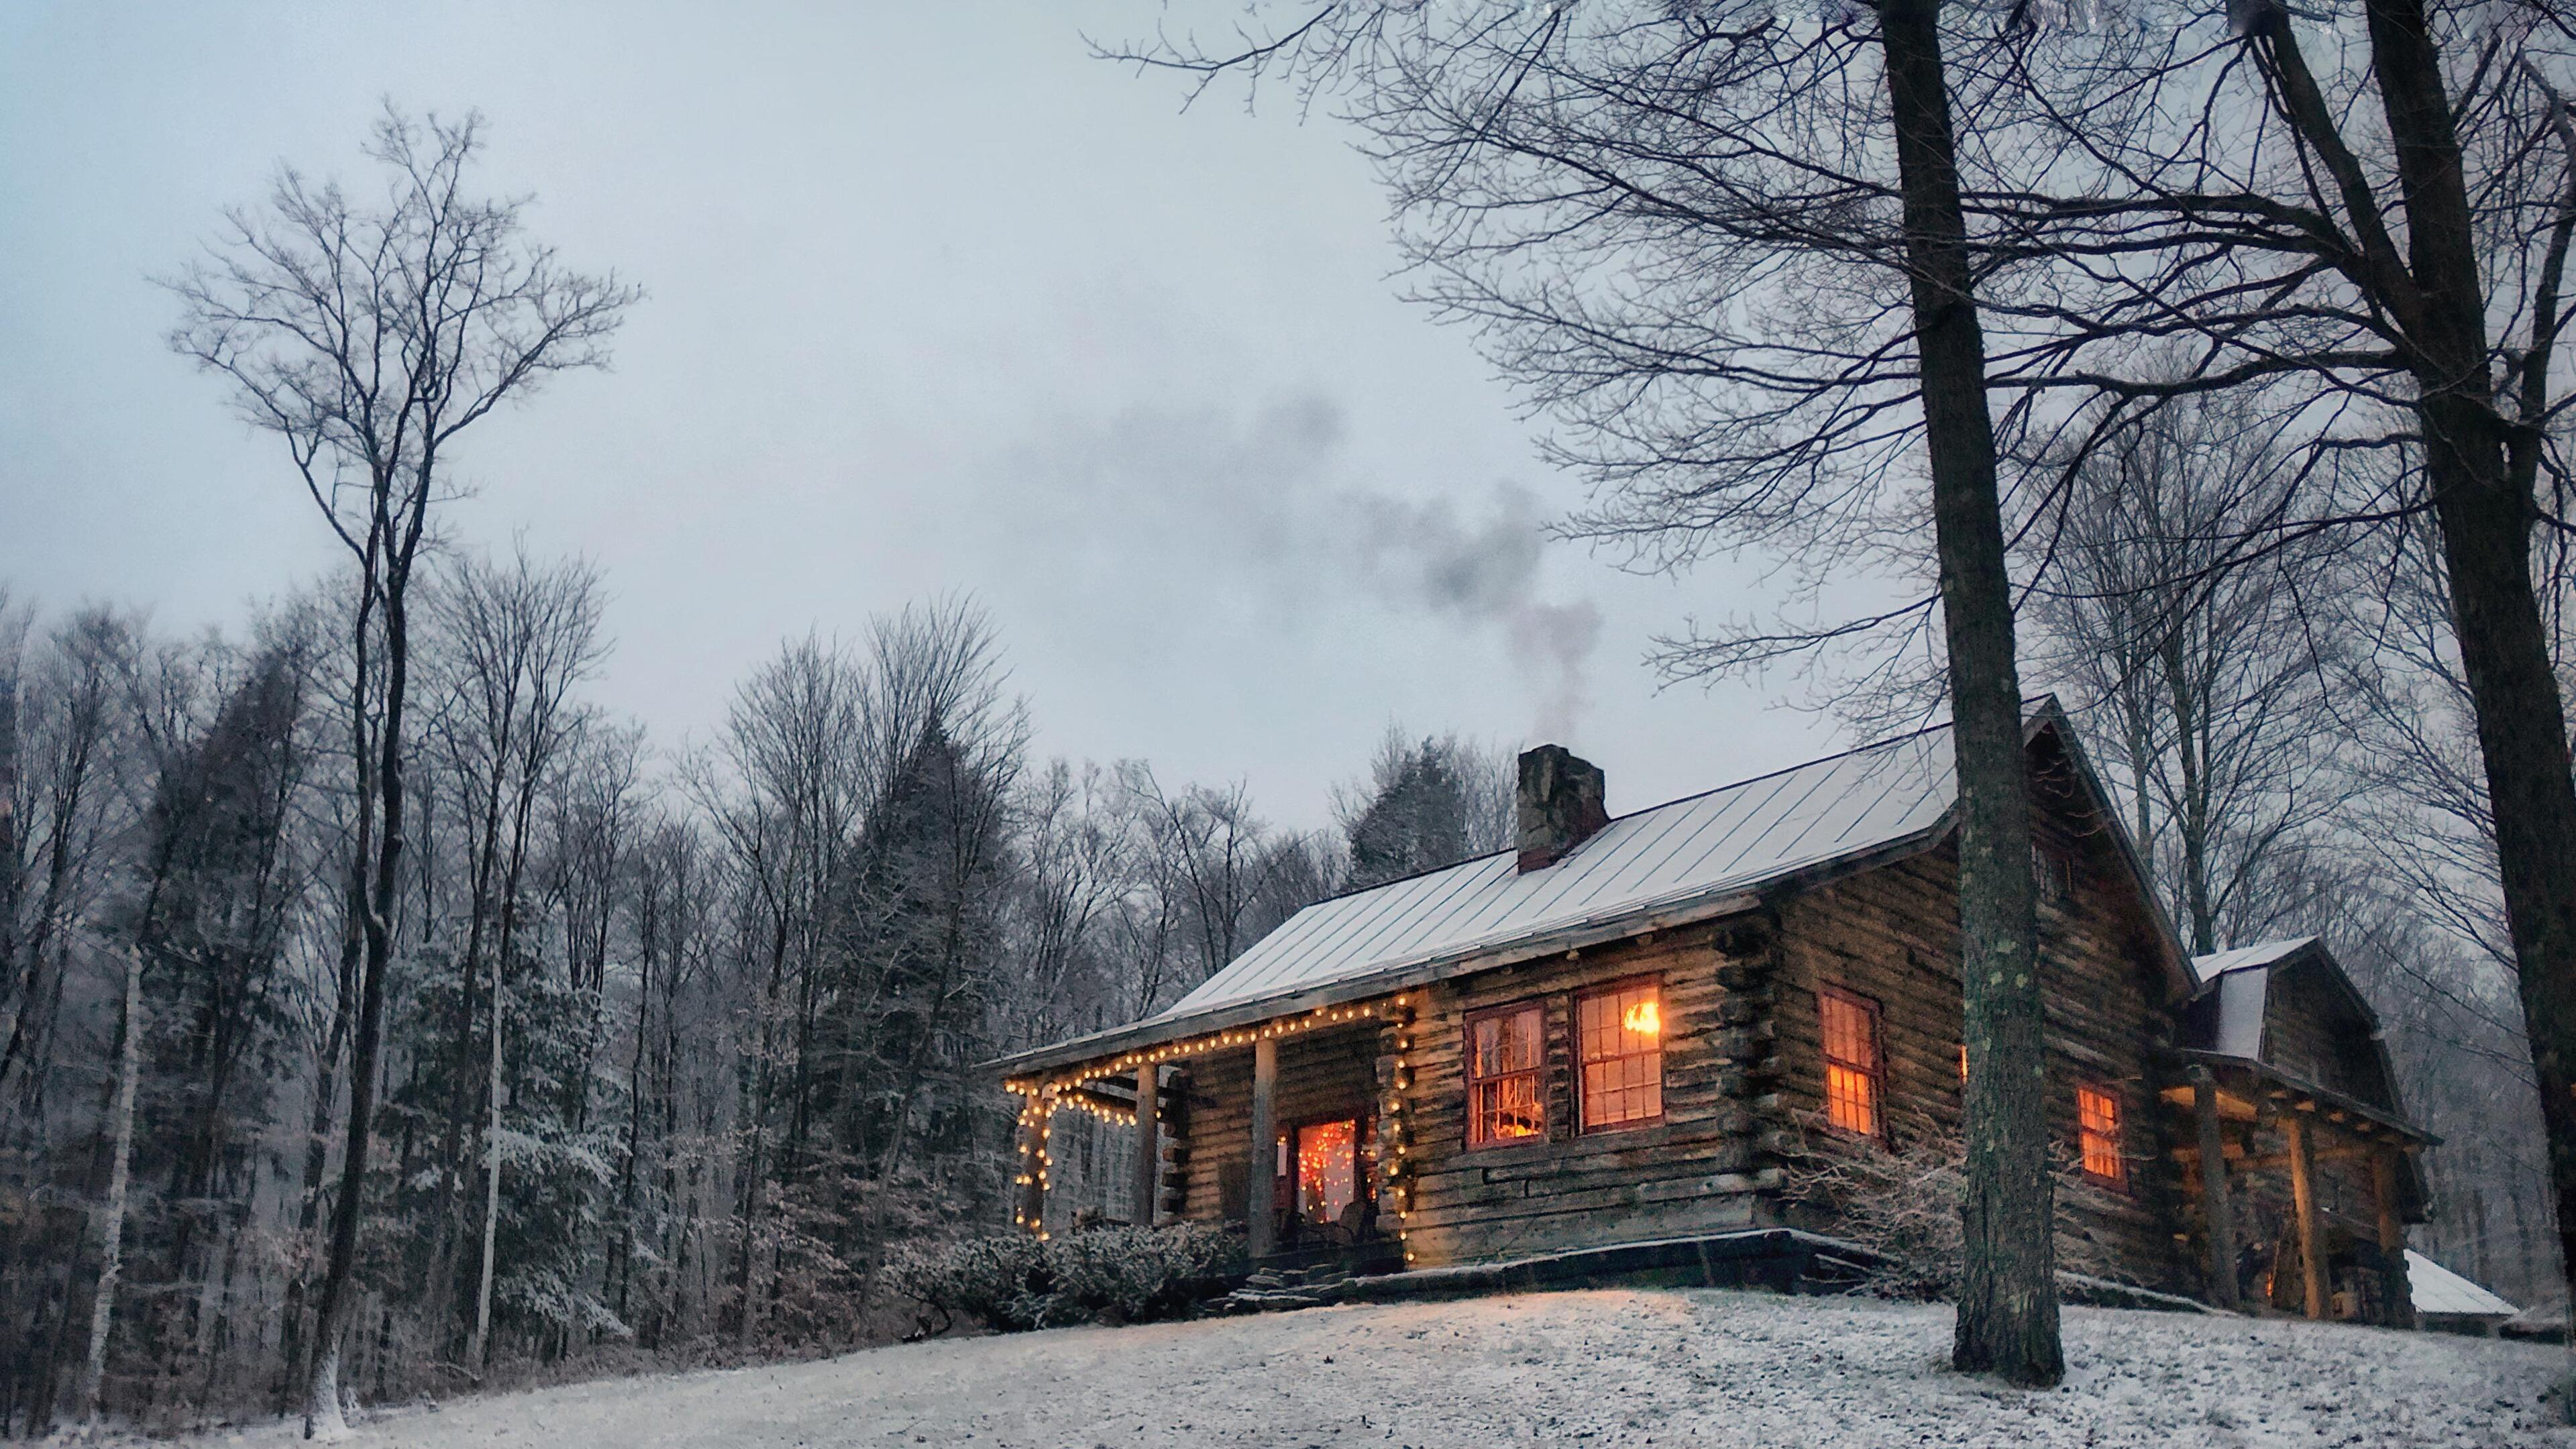 Snow Cabin Wallpapers Top Free Snow Cabin Backgrounds